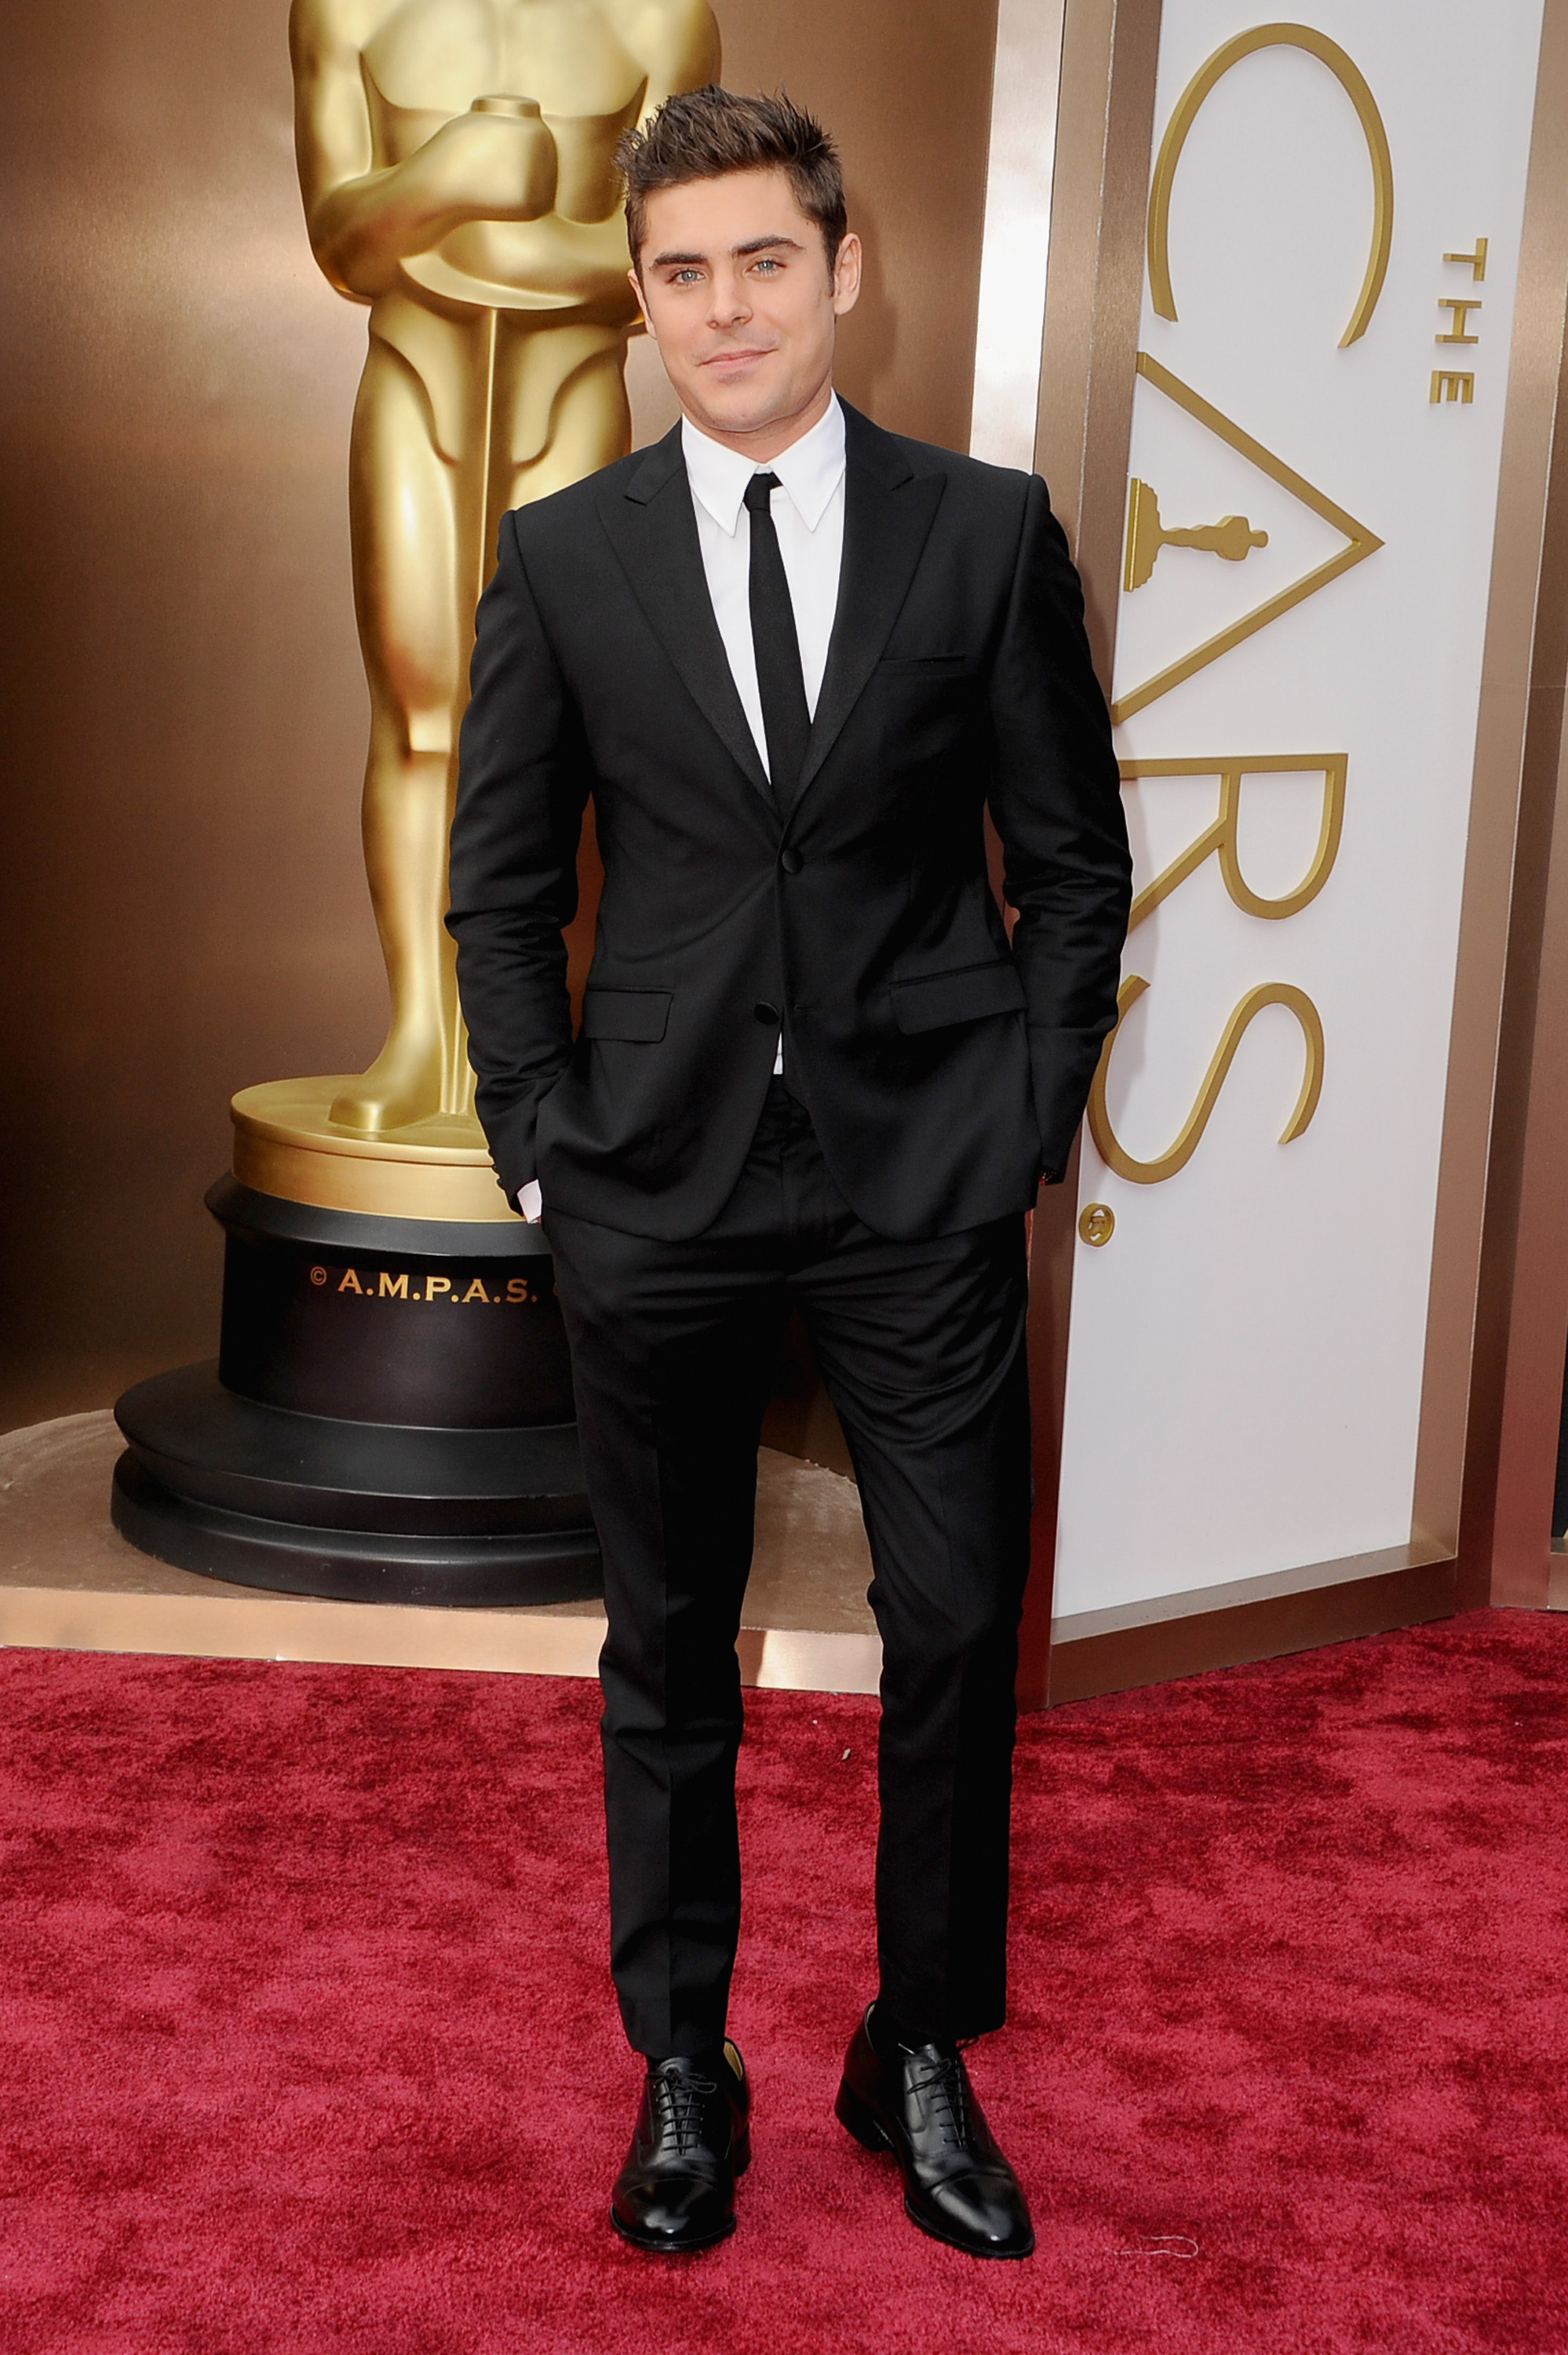 Zac Efron  The Stars Come Out  Zac Efron 2014 Oscars